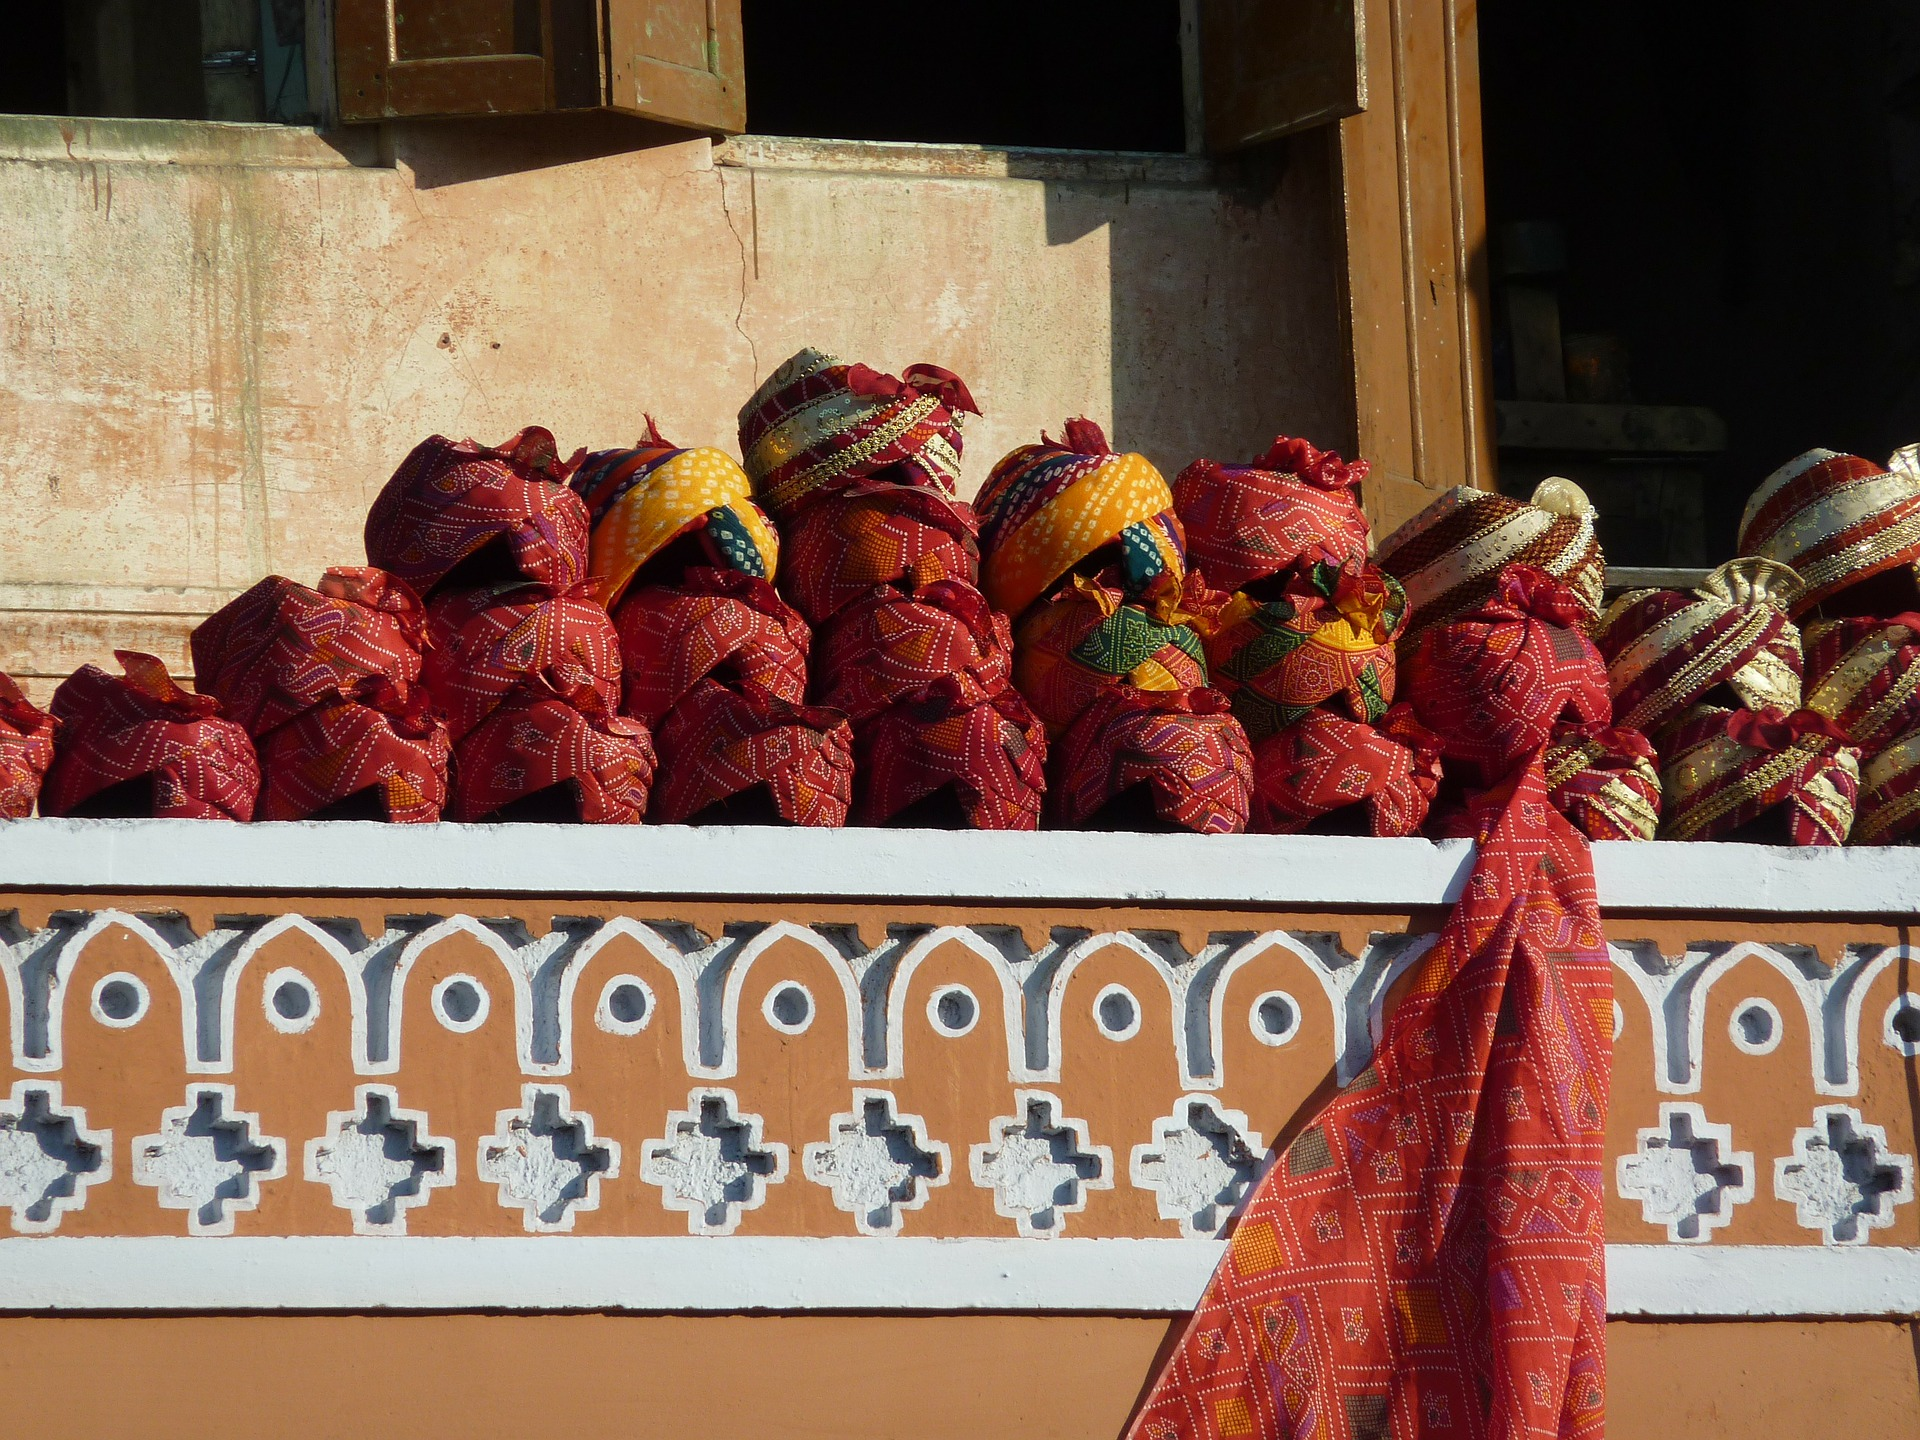 Rajasthani headgear, Indian Traditions, Tours around North India Rajasthan